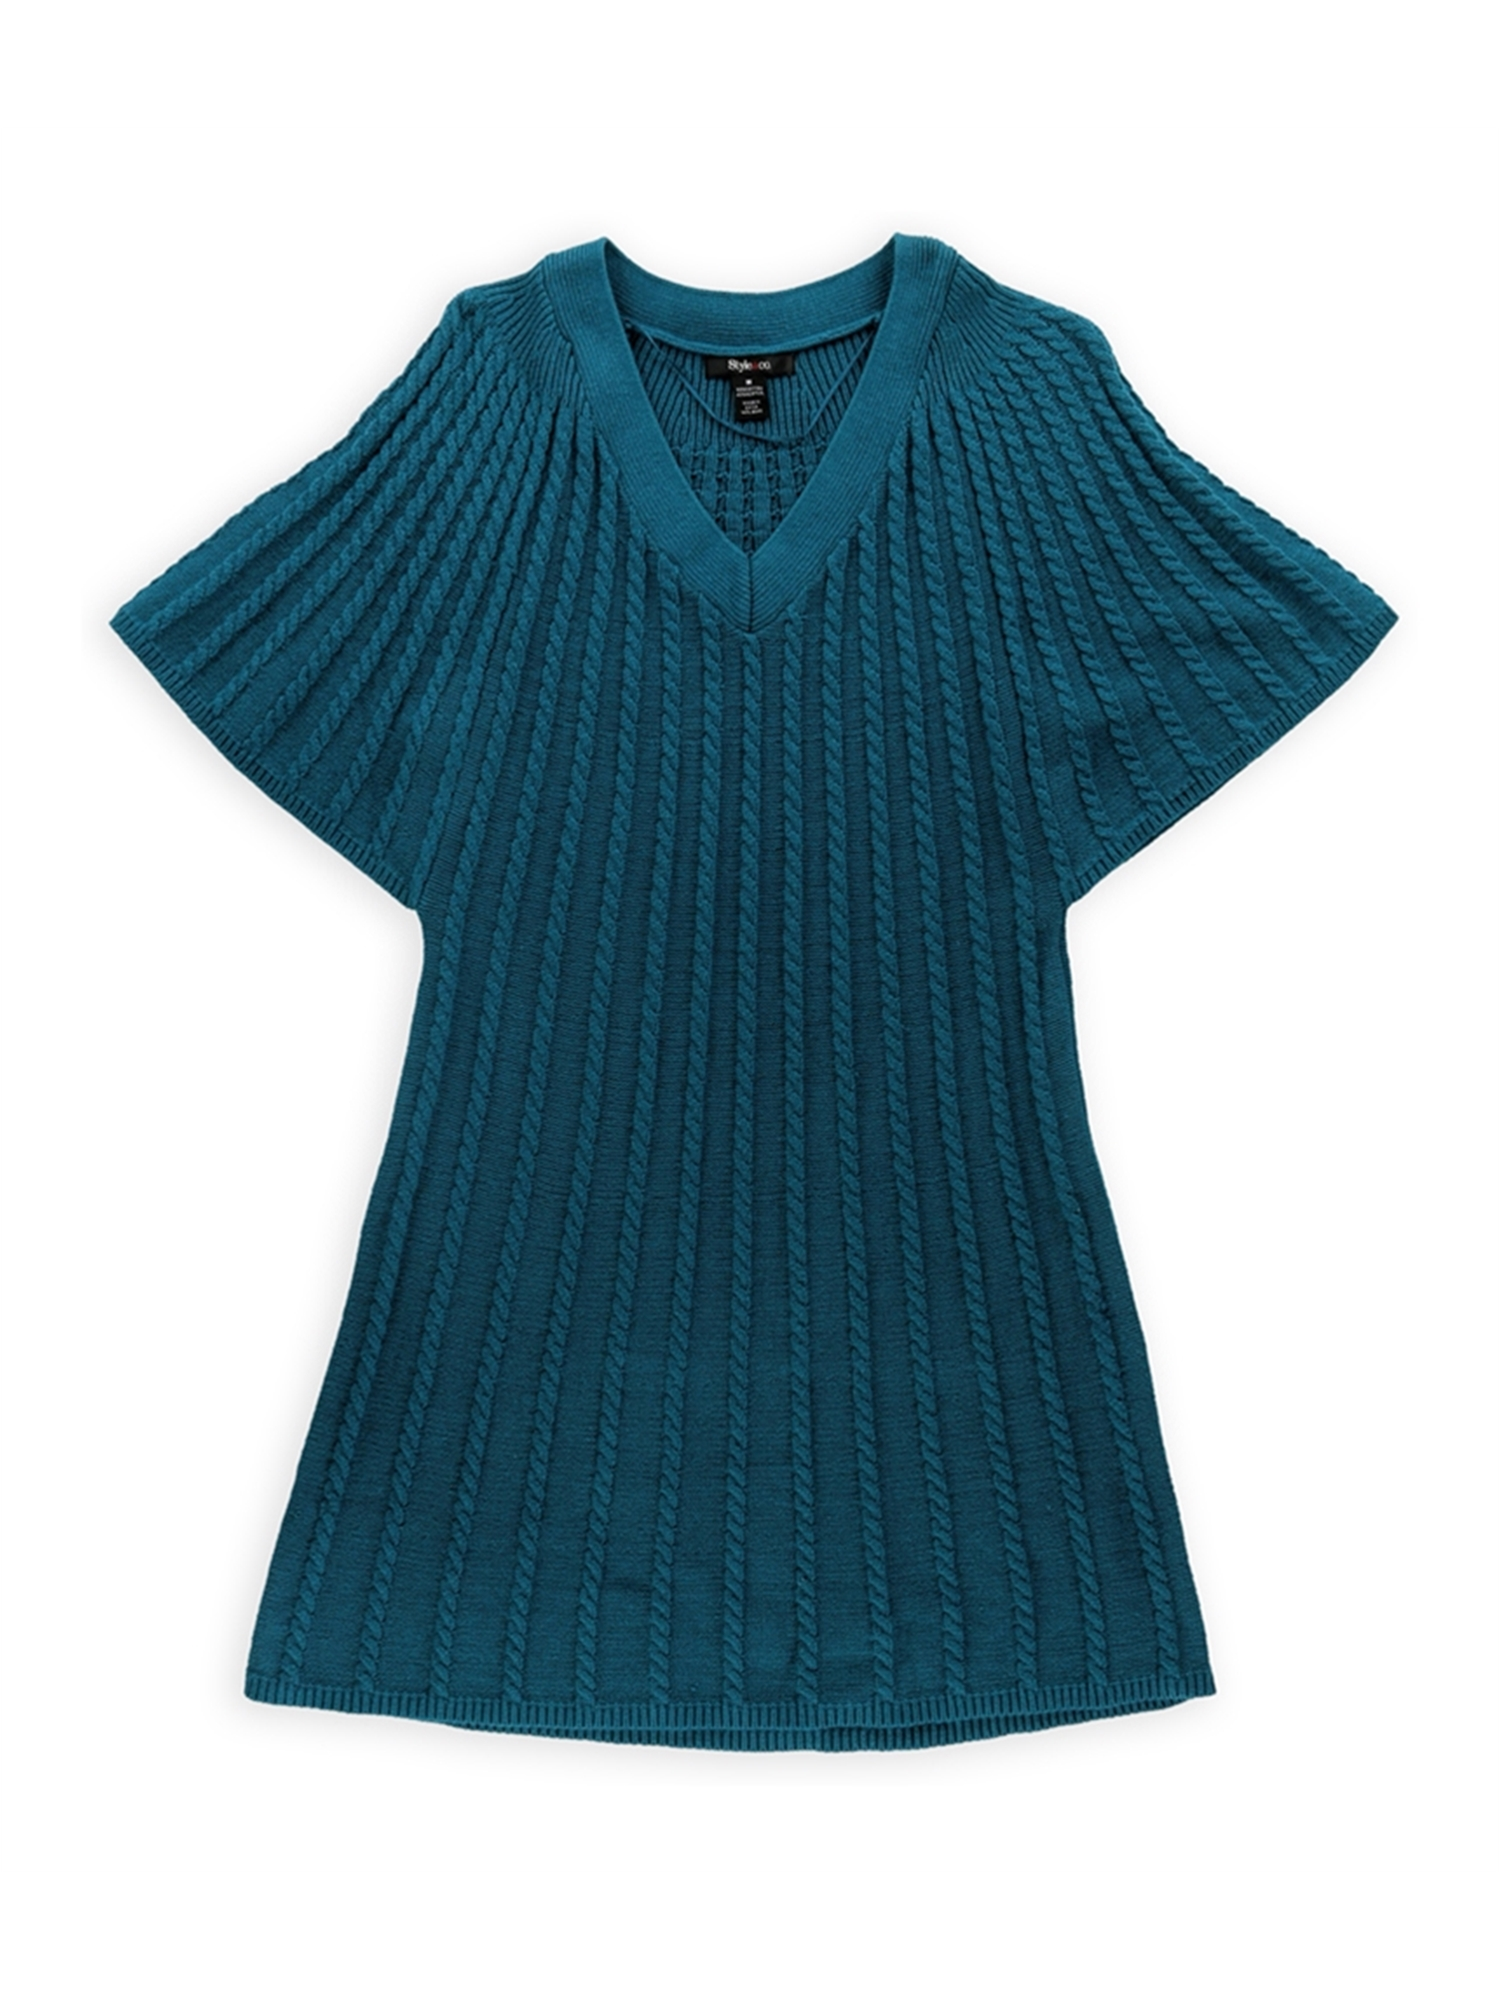 a73a0f3140 Style co. Womens Cable Knit Sweater Vest frenchteal M